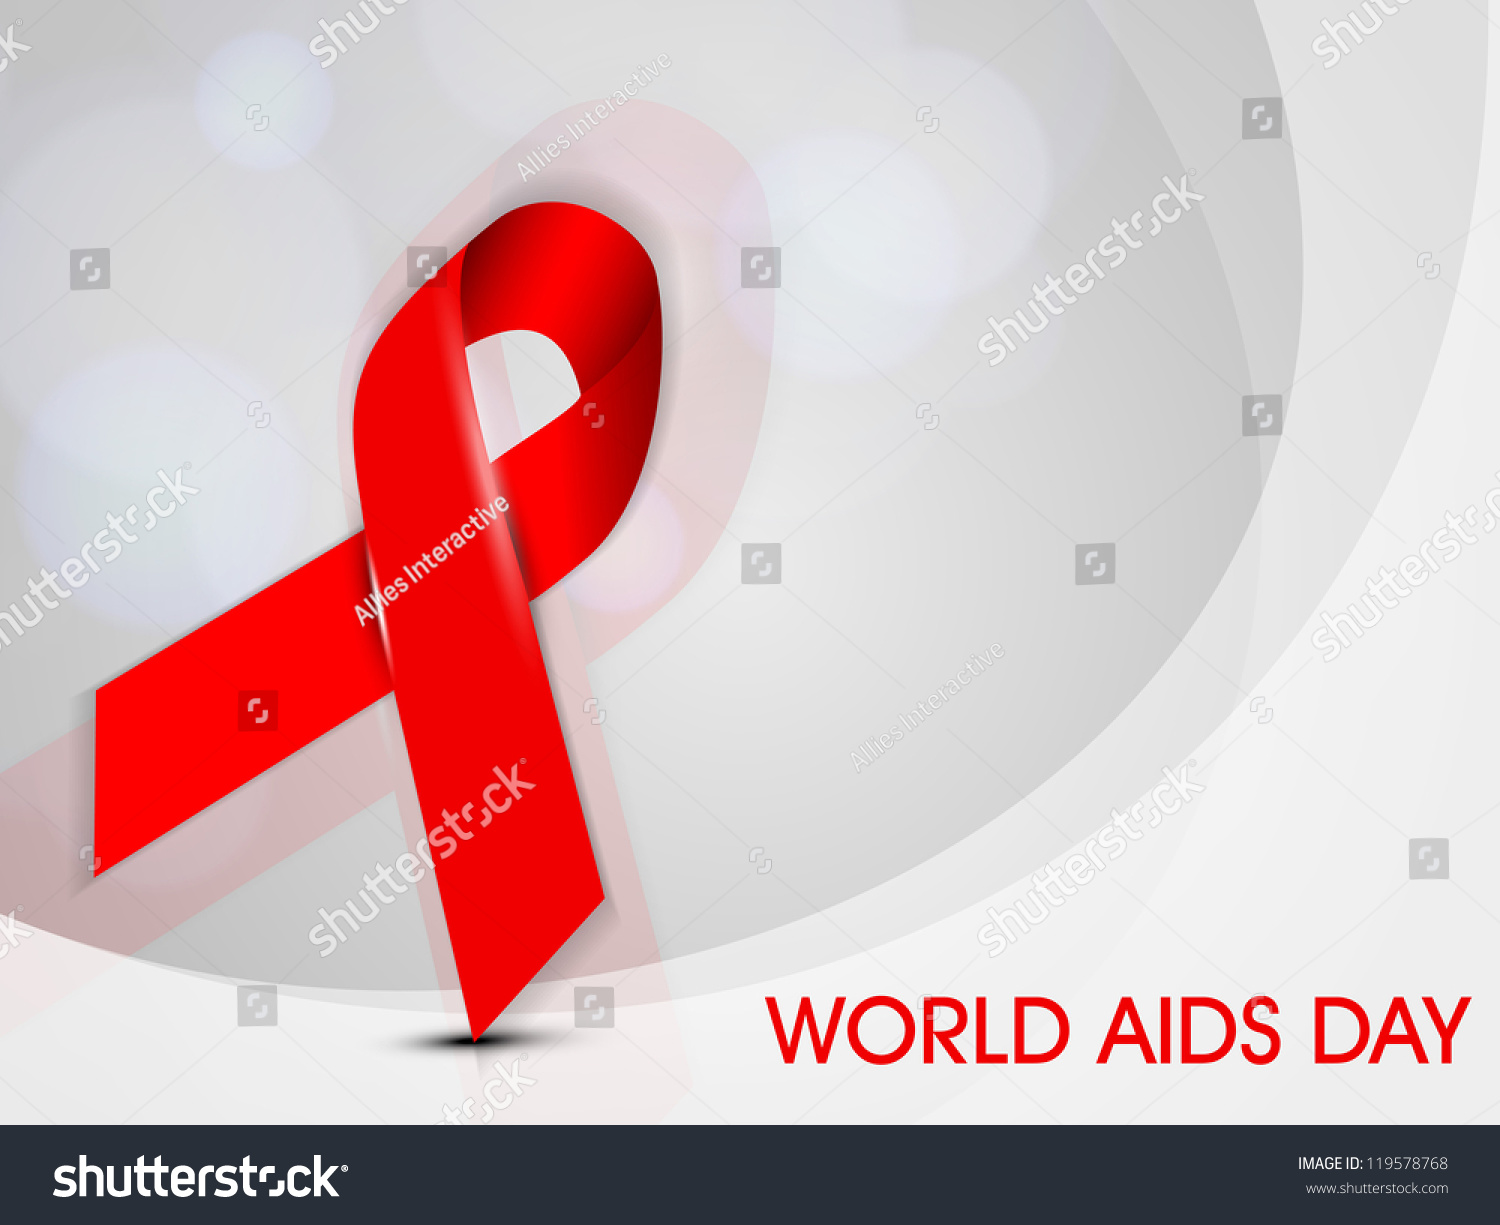 world aids day backgrounds - photo #18